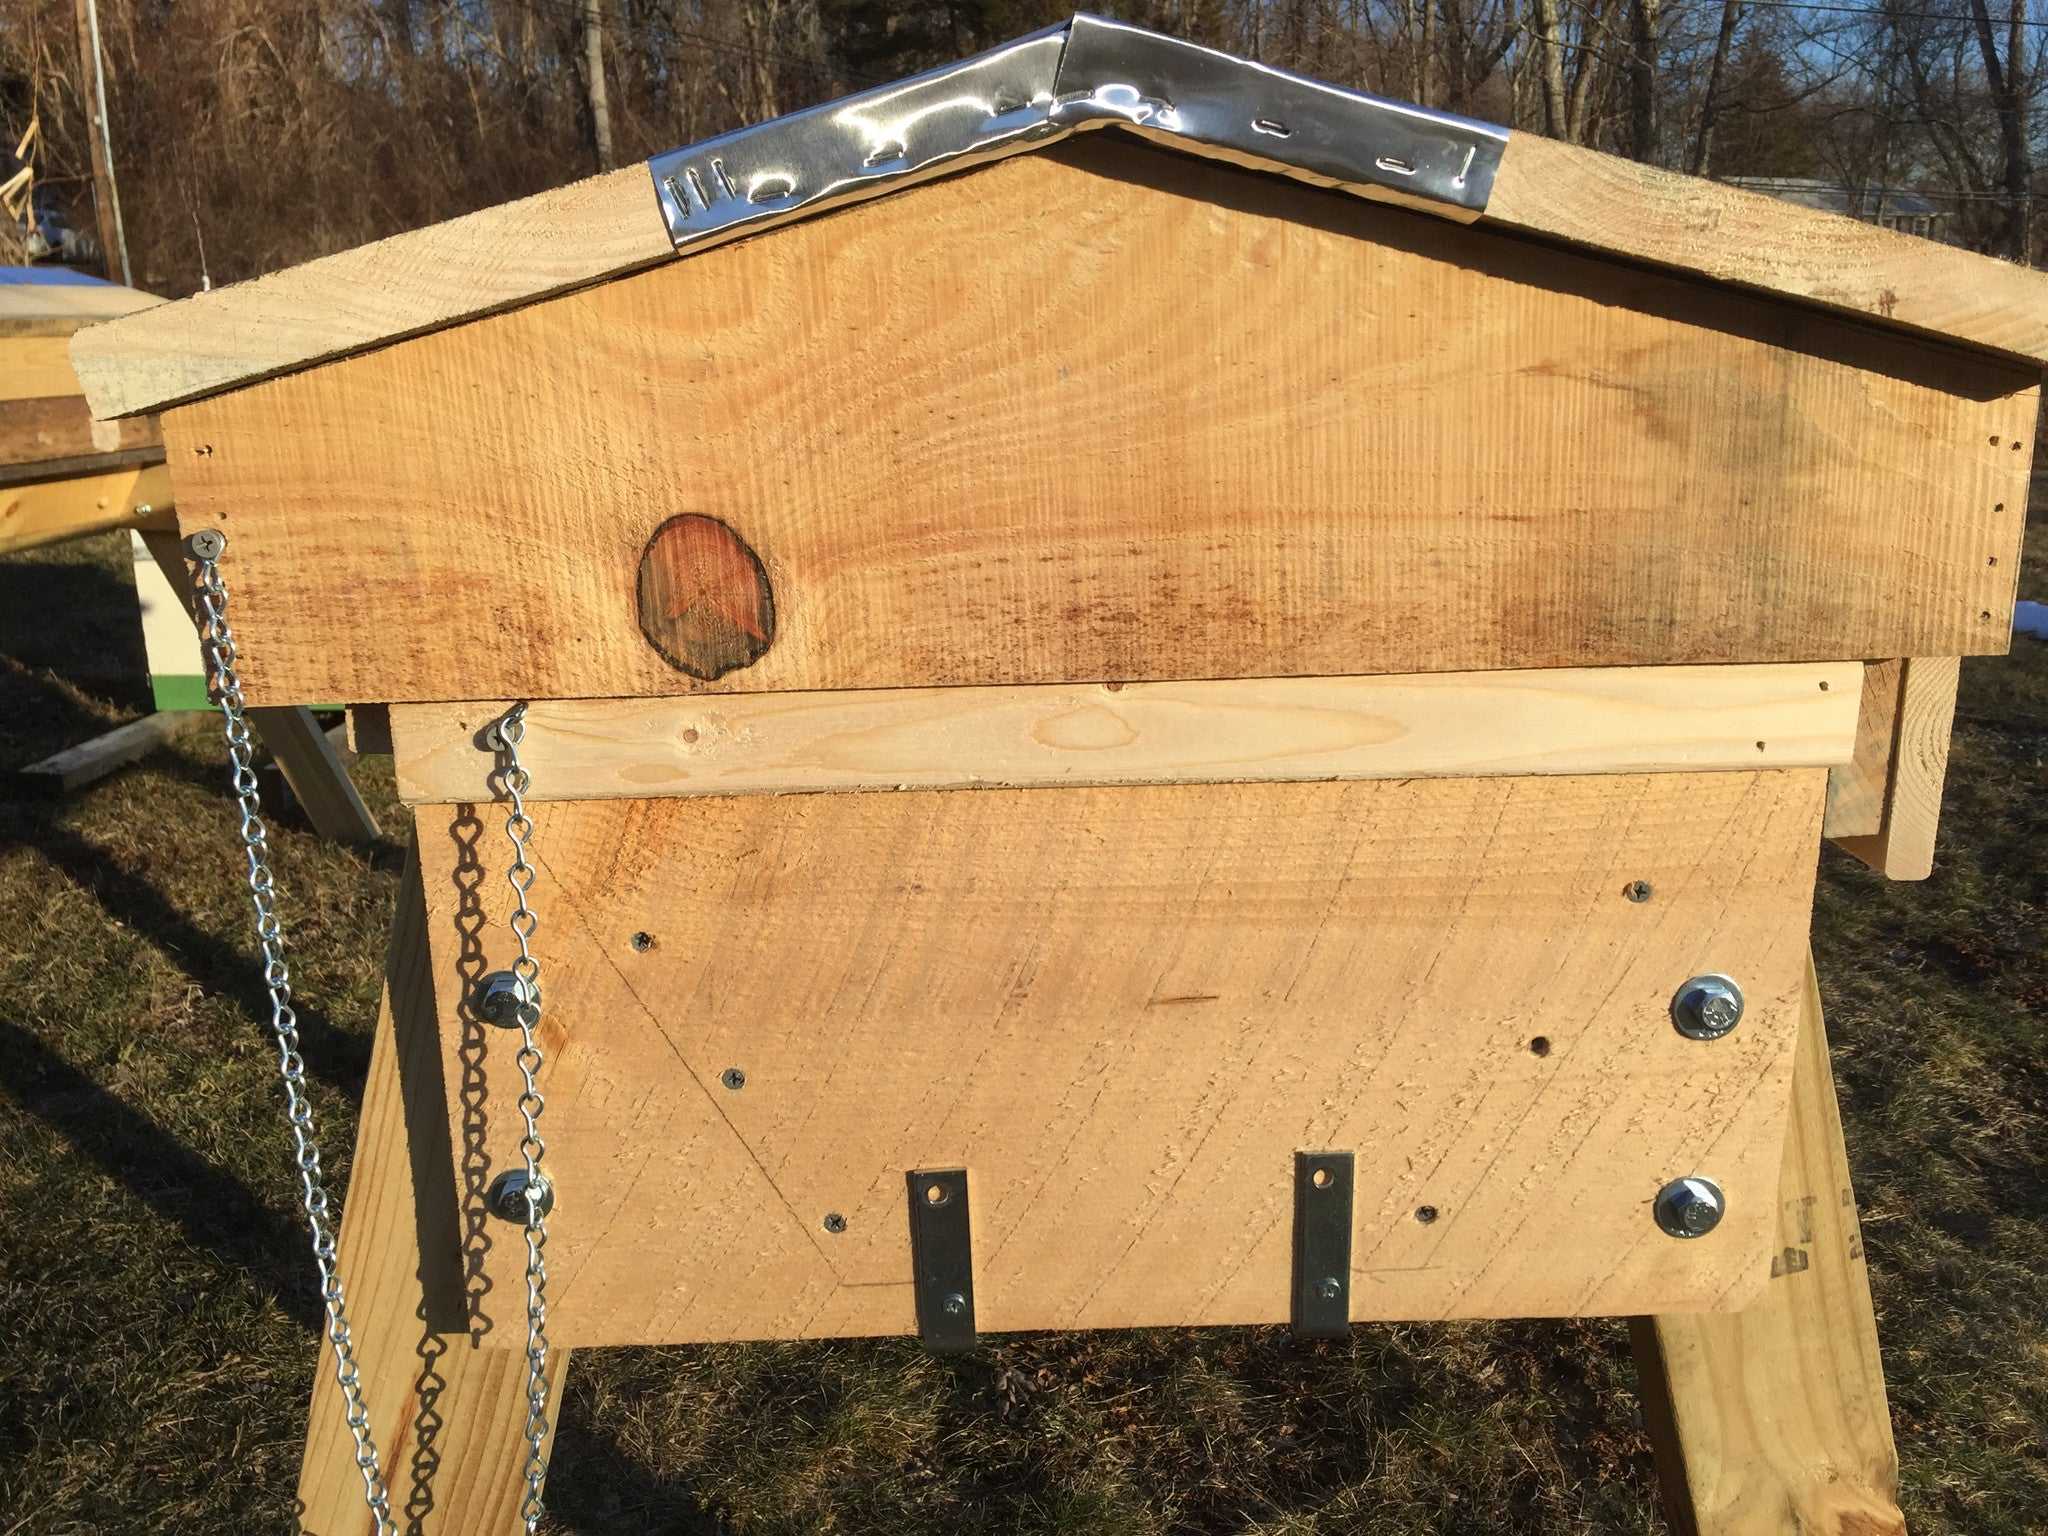 Legs are bolted outside of the hive so you can remove them in the event that you need to move the hive. The bottom board is attached with an L-bracket. It can be hung with a gap below the hive to perform mite counts.